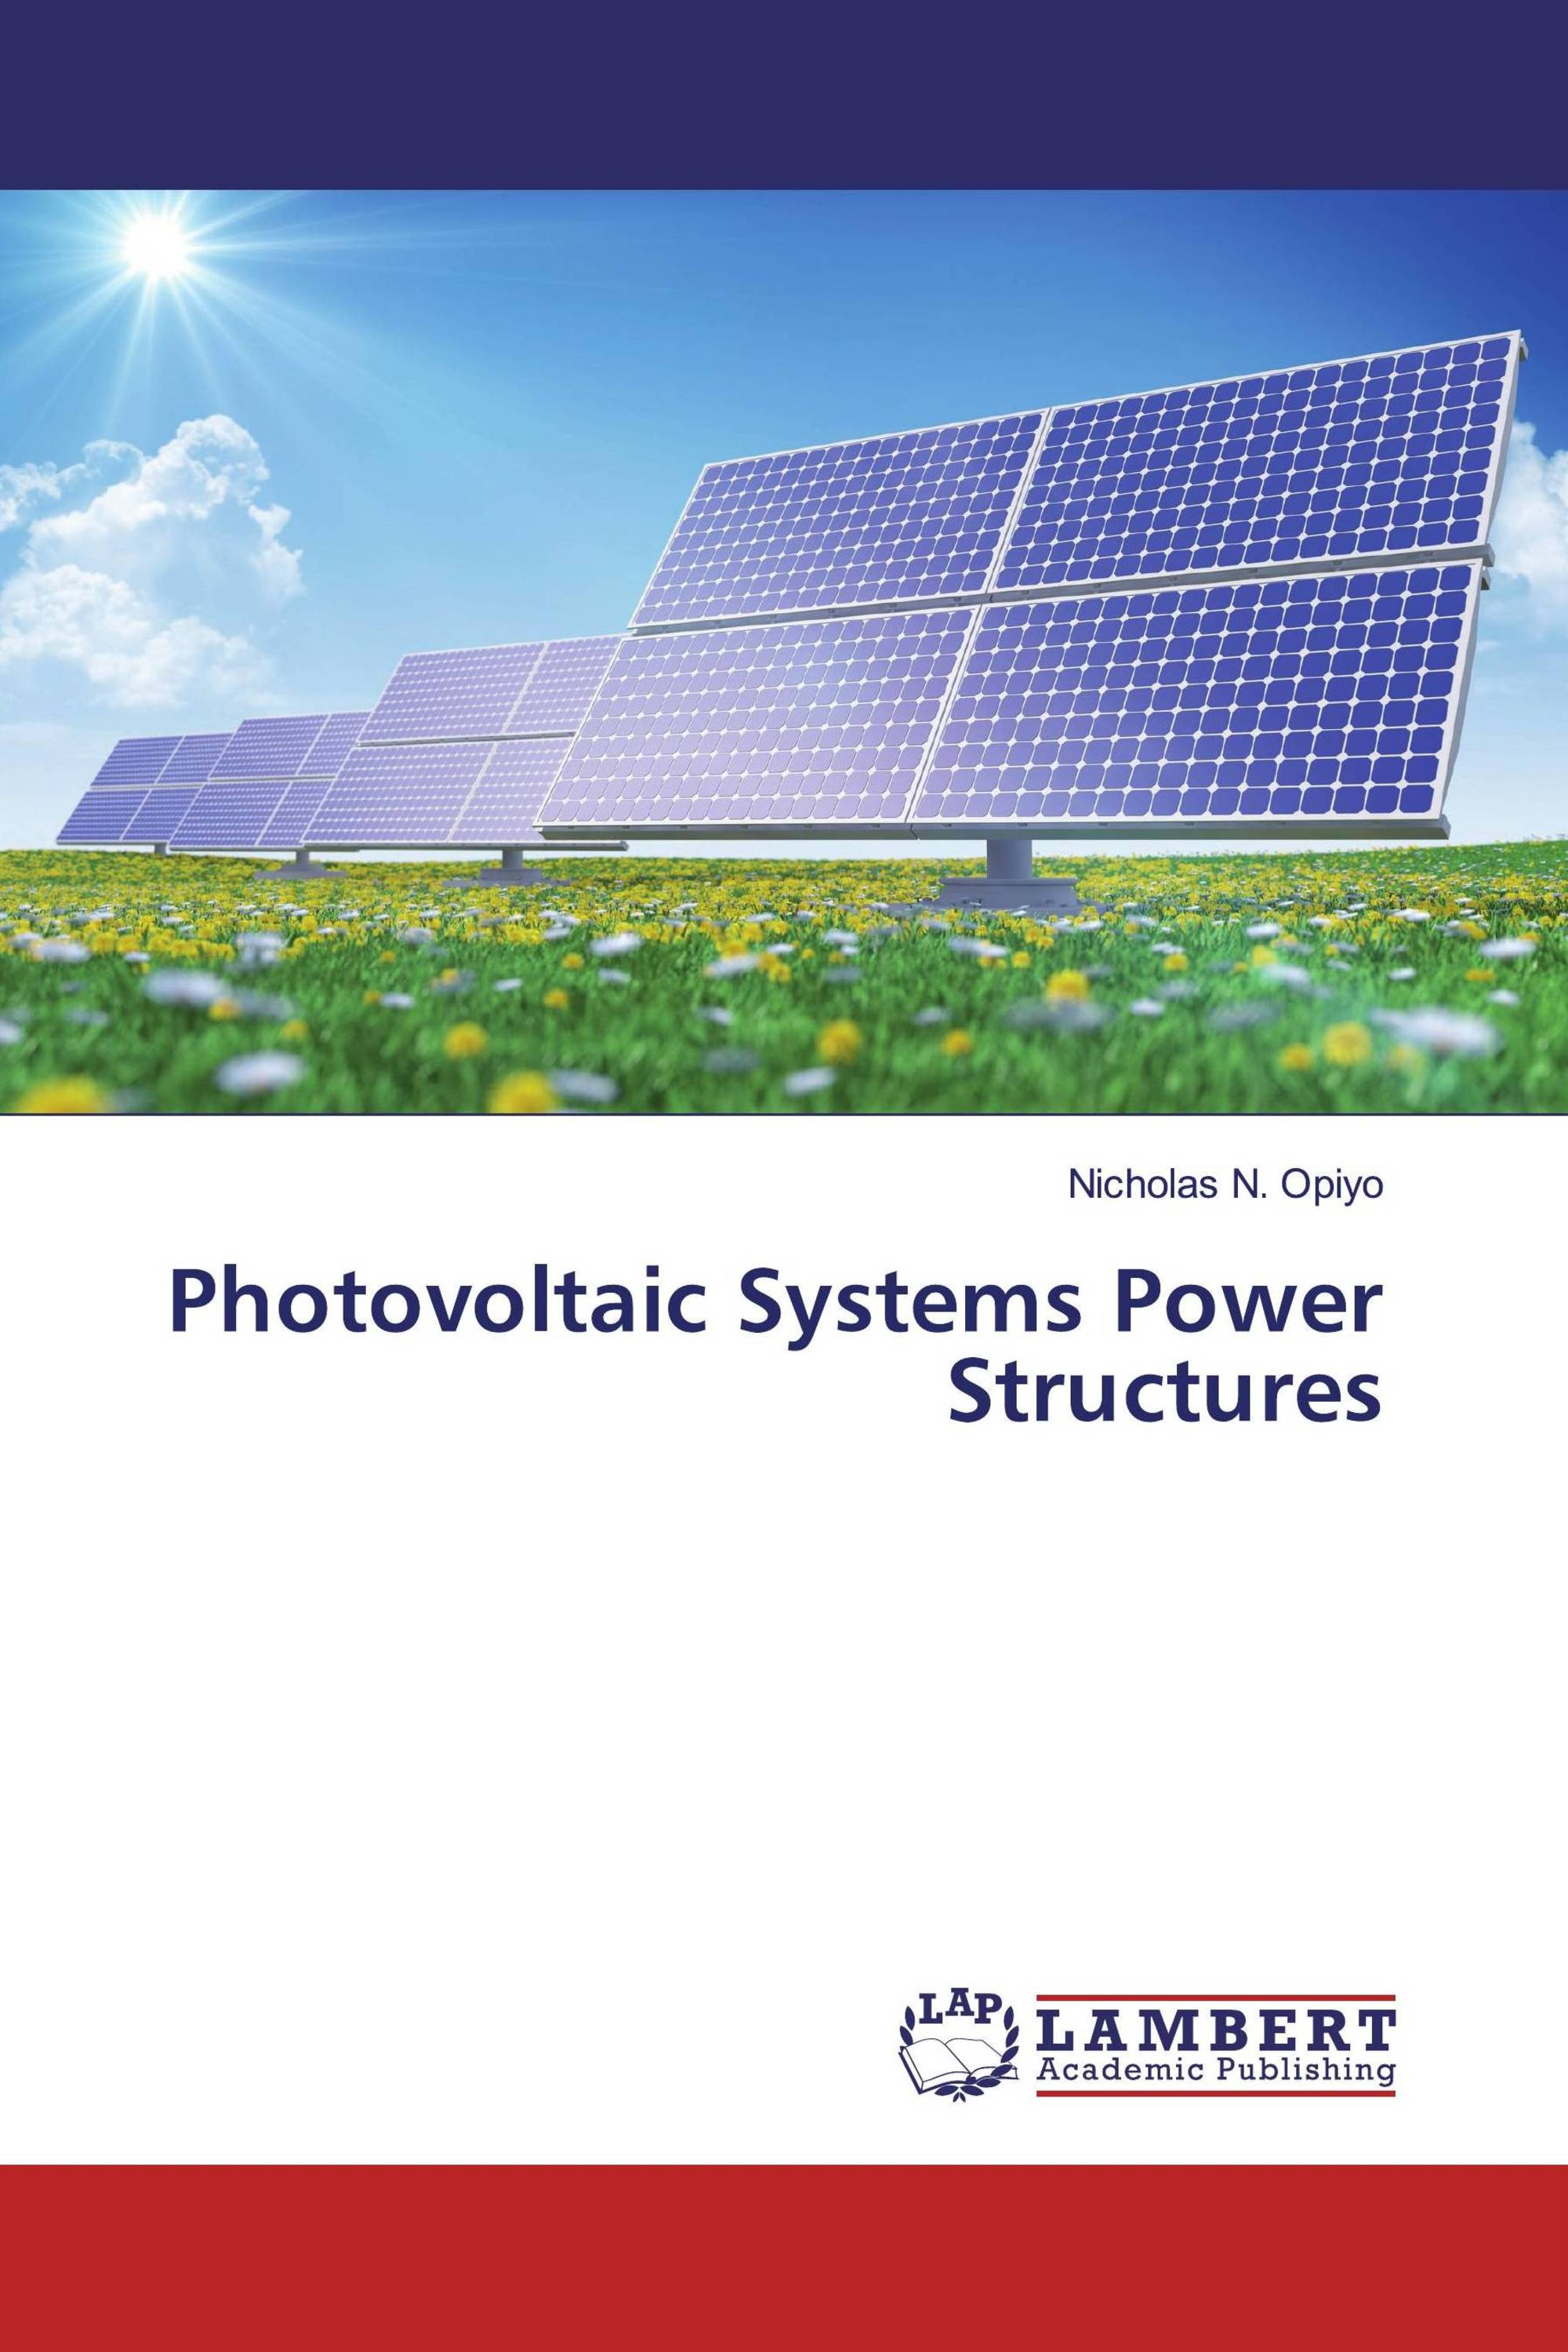 Photovoltaic Systems Power Structures